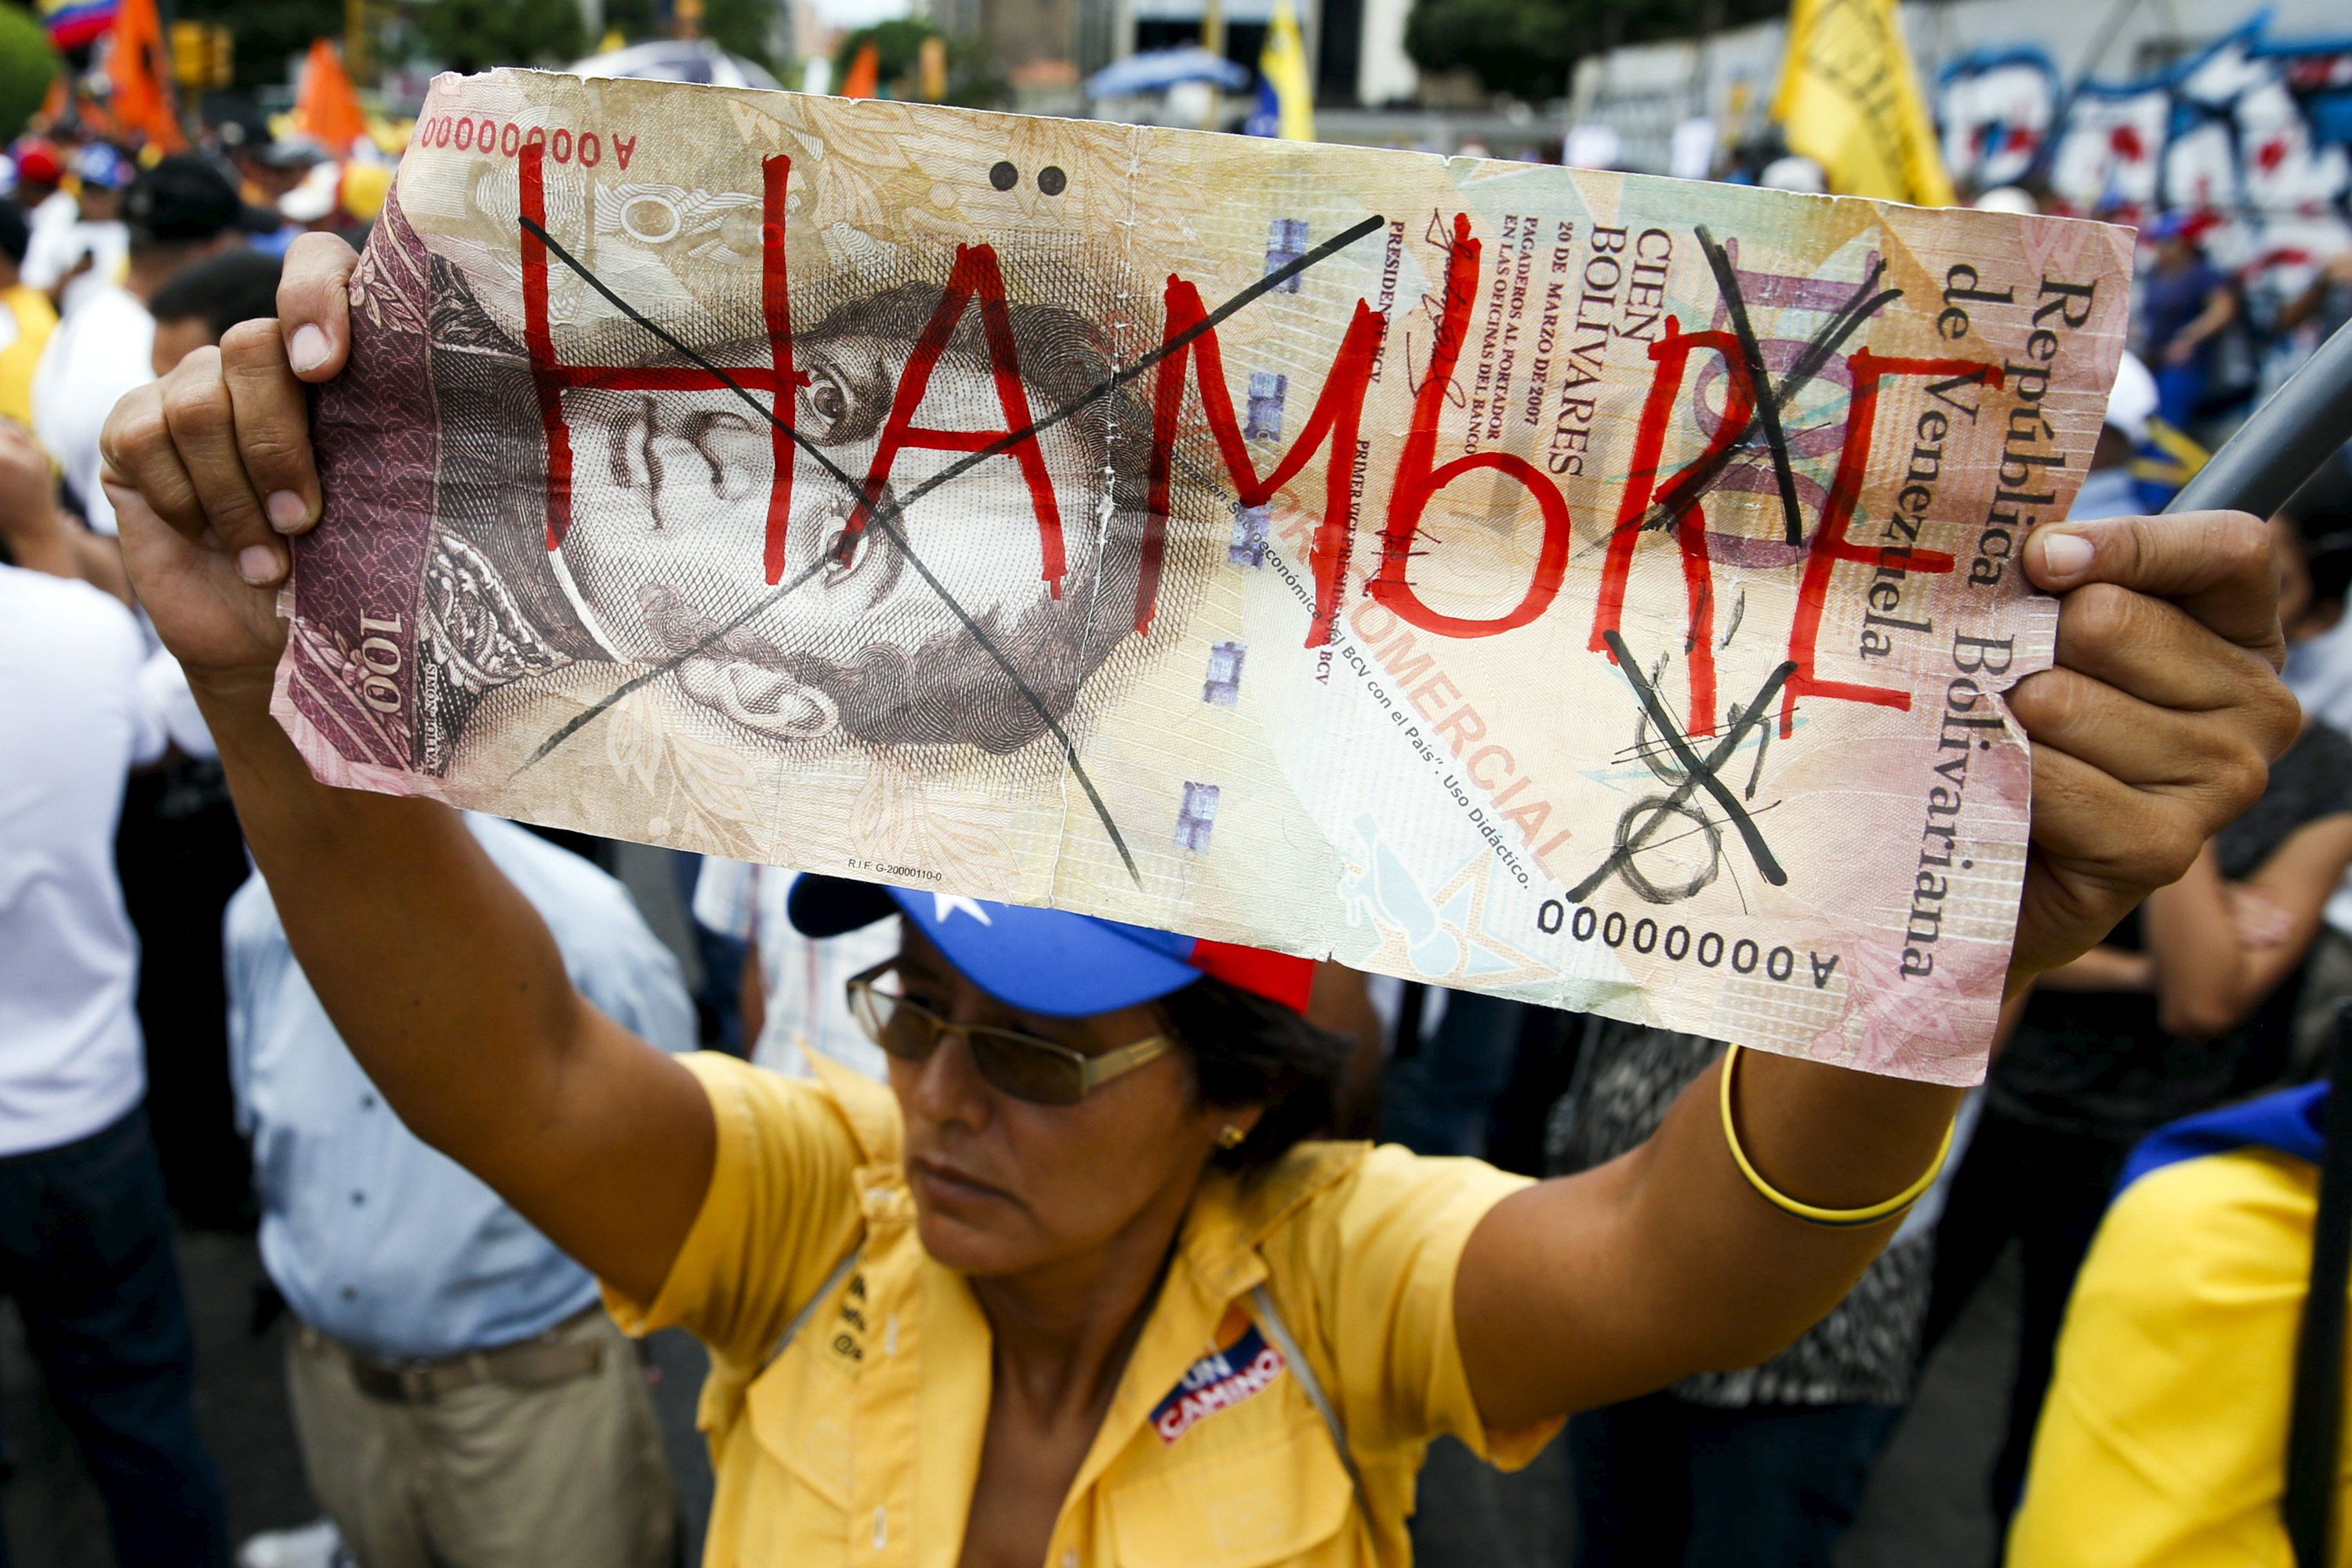 "A woman holds up a giant hundred Bolivar note with the word, ""Hungry"" written on it in Spanish during a gathering to protest the government of President Nicolas Maduro, as well as economic insecurity and shortages, in Caracas, Venezuela, August 8, 2015. Photo by Carlos Garcia Rawlins/Reuters"